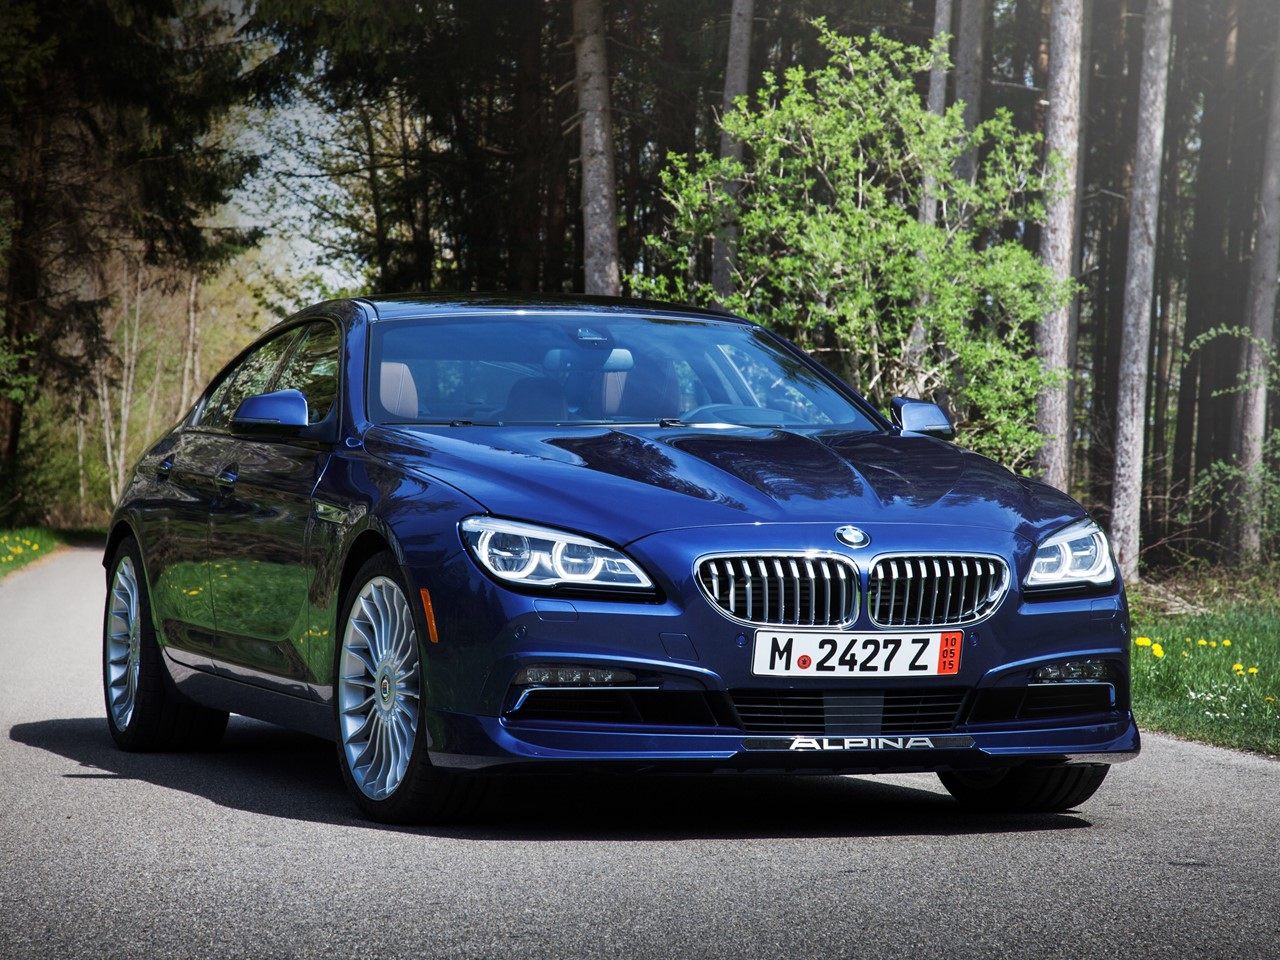 2016 Alpina B6 xDrive Gran Coupe 2